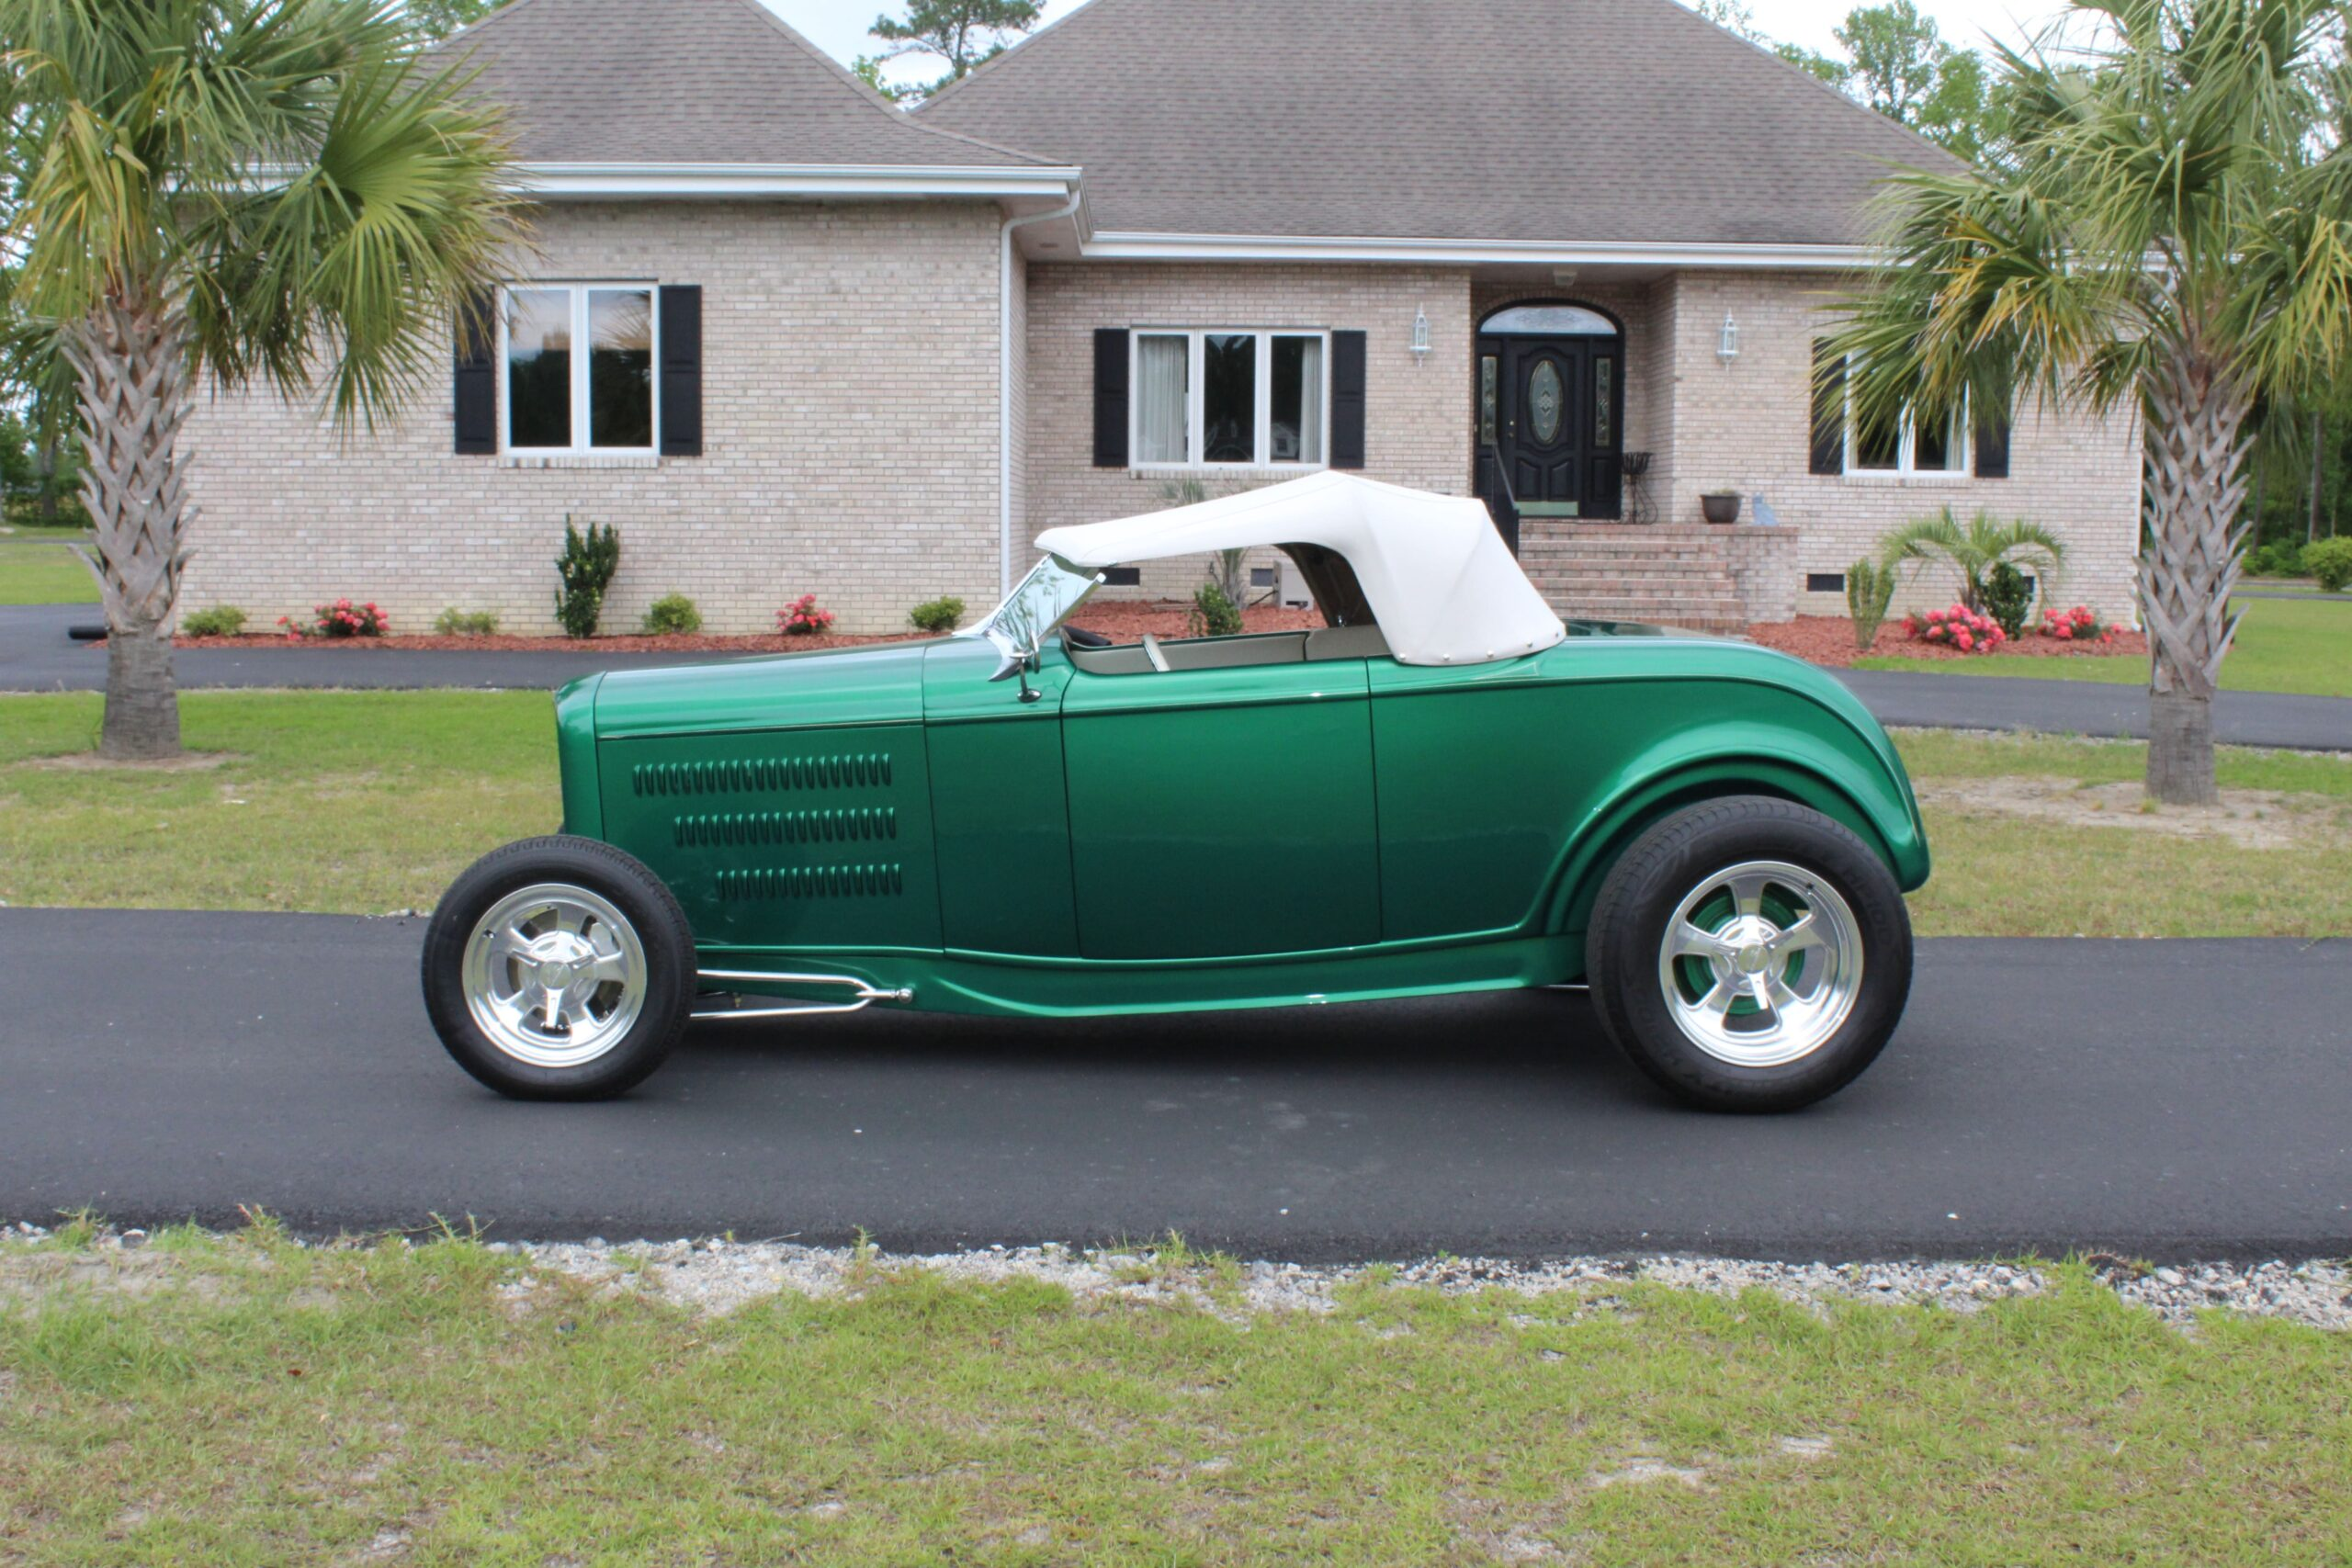 Donald Elliott, Loris, SC - 1932 Ford Roadster